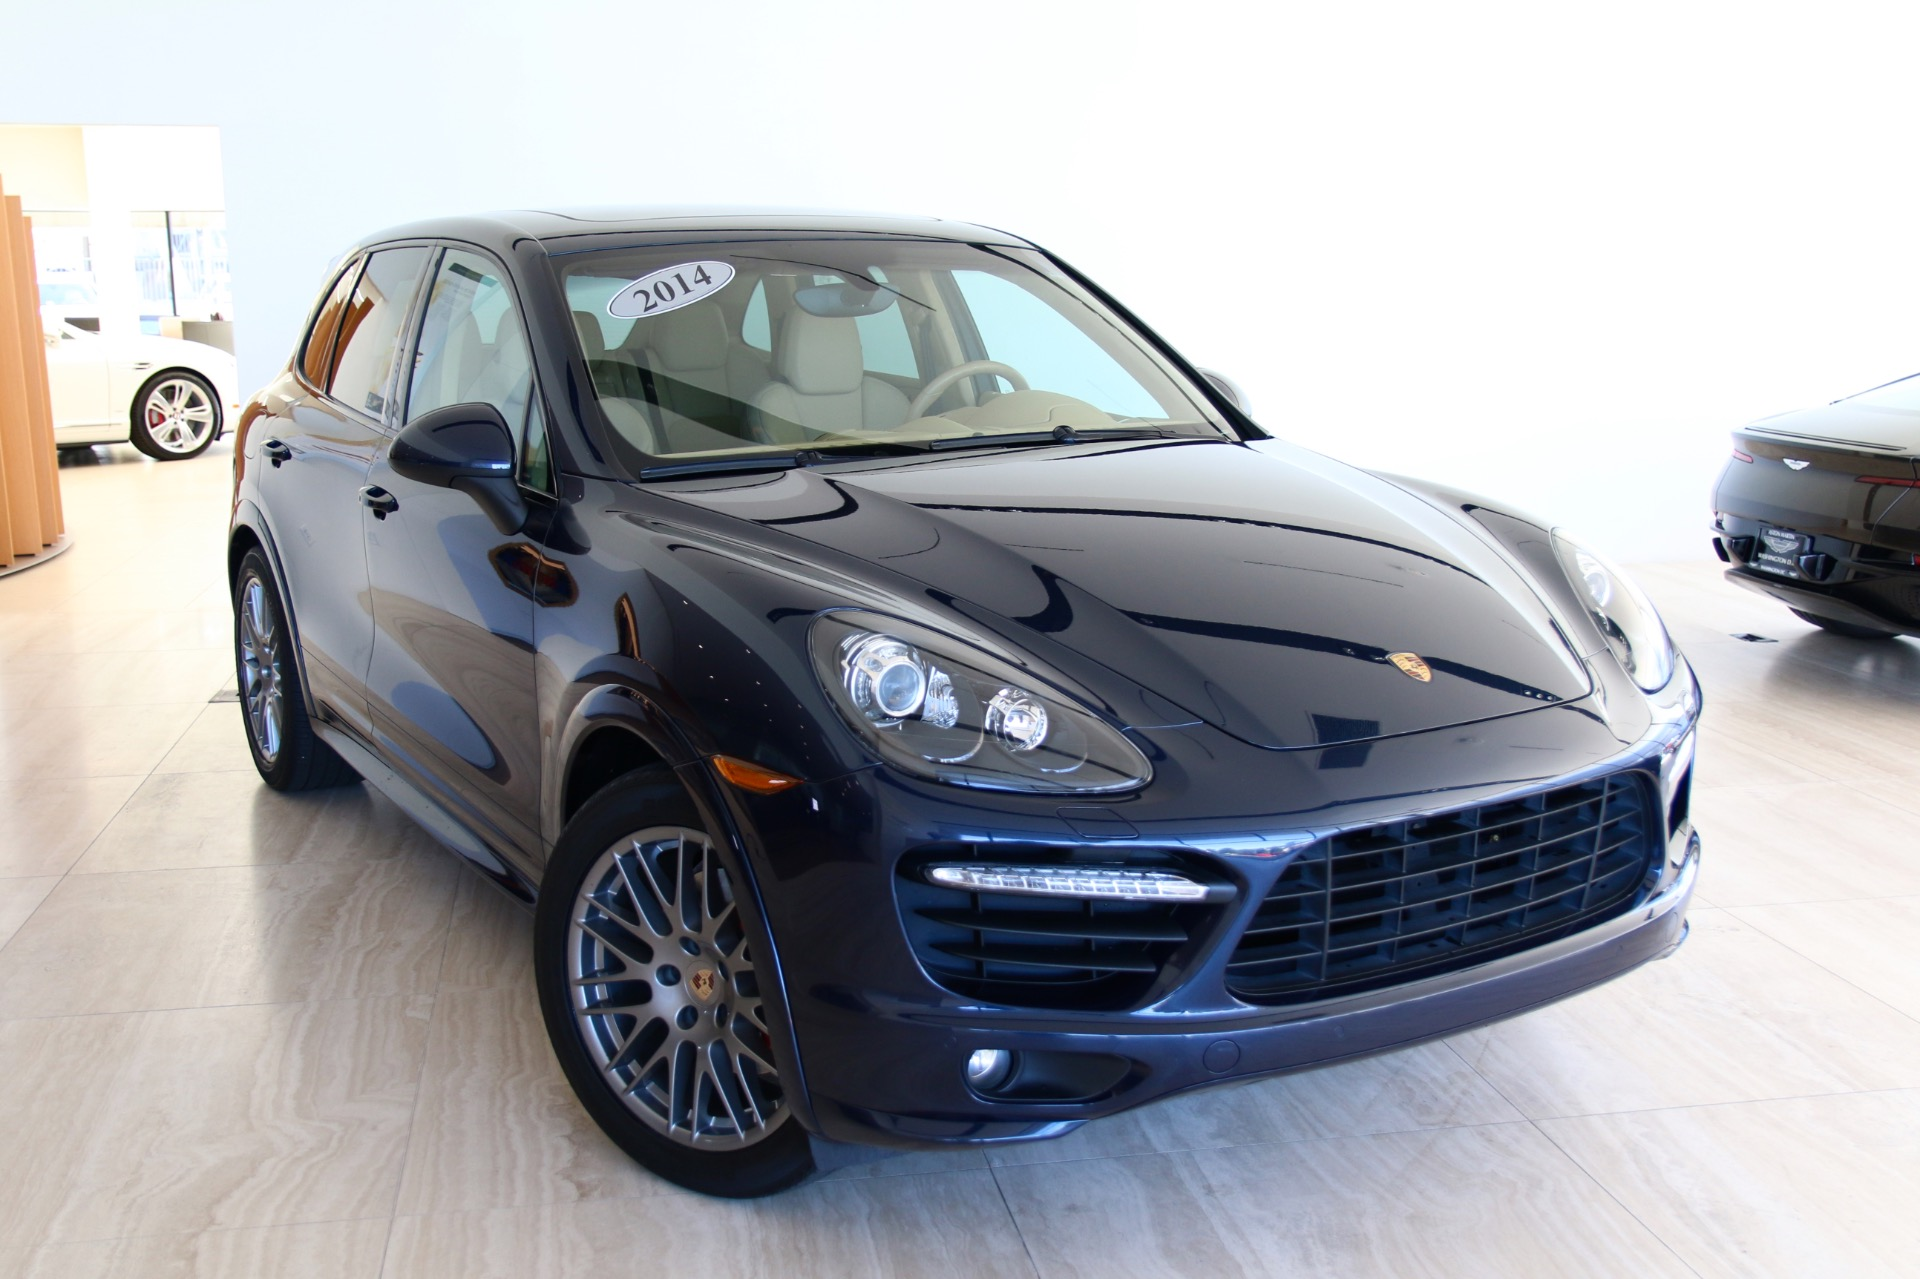 2014 porsche cayenne gts stock pa73062 for sale near vienna va va porsche dealer for sale. Black Bedroom Furniture Sets. Home Design Ideas